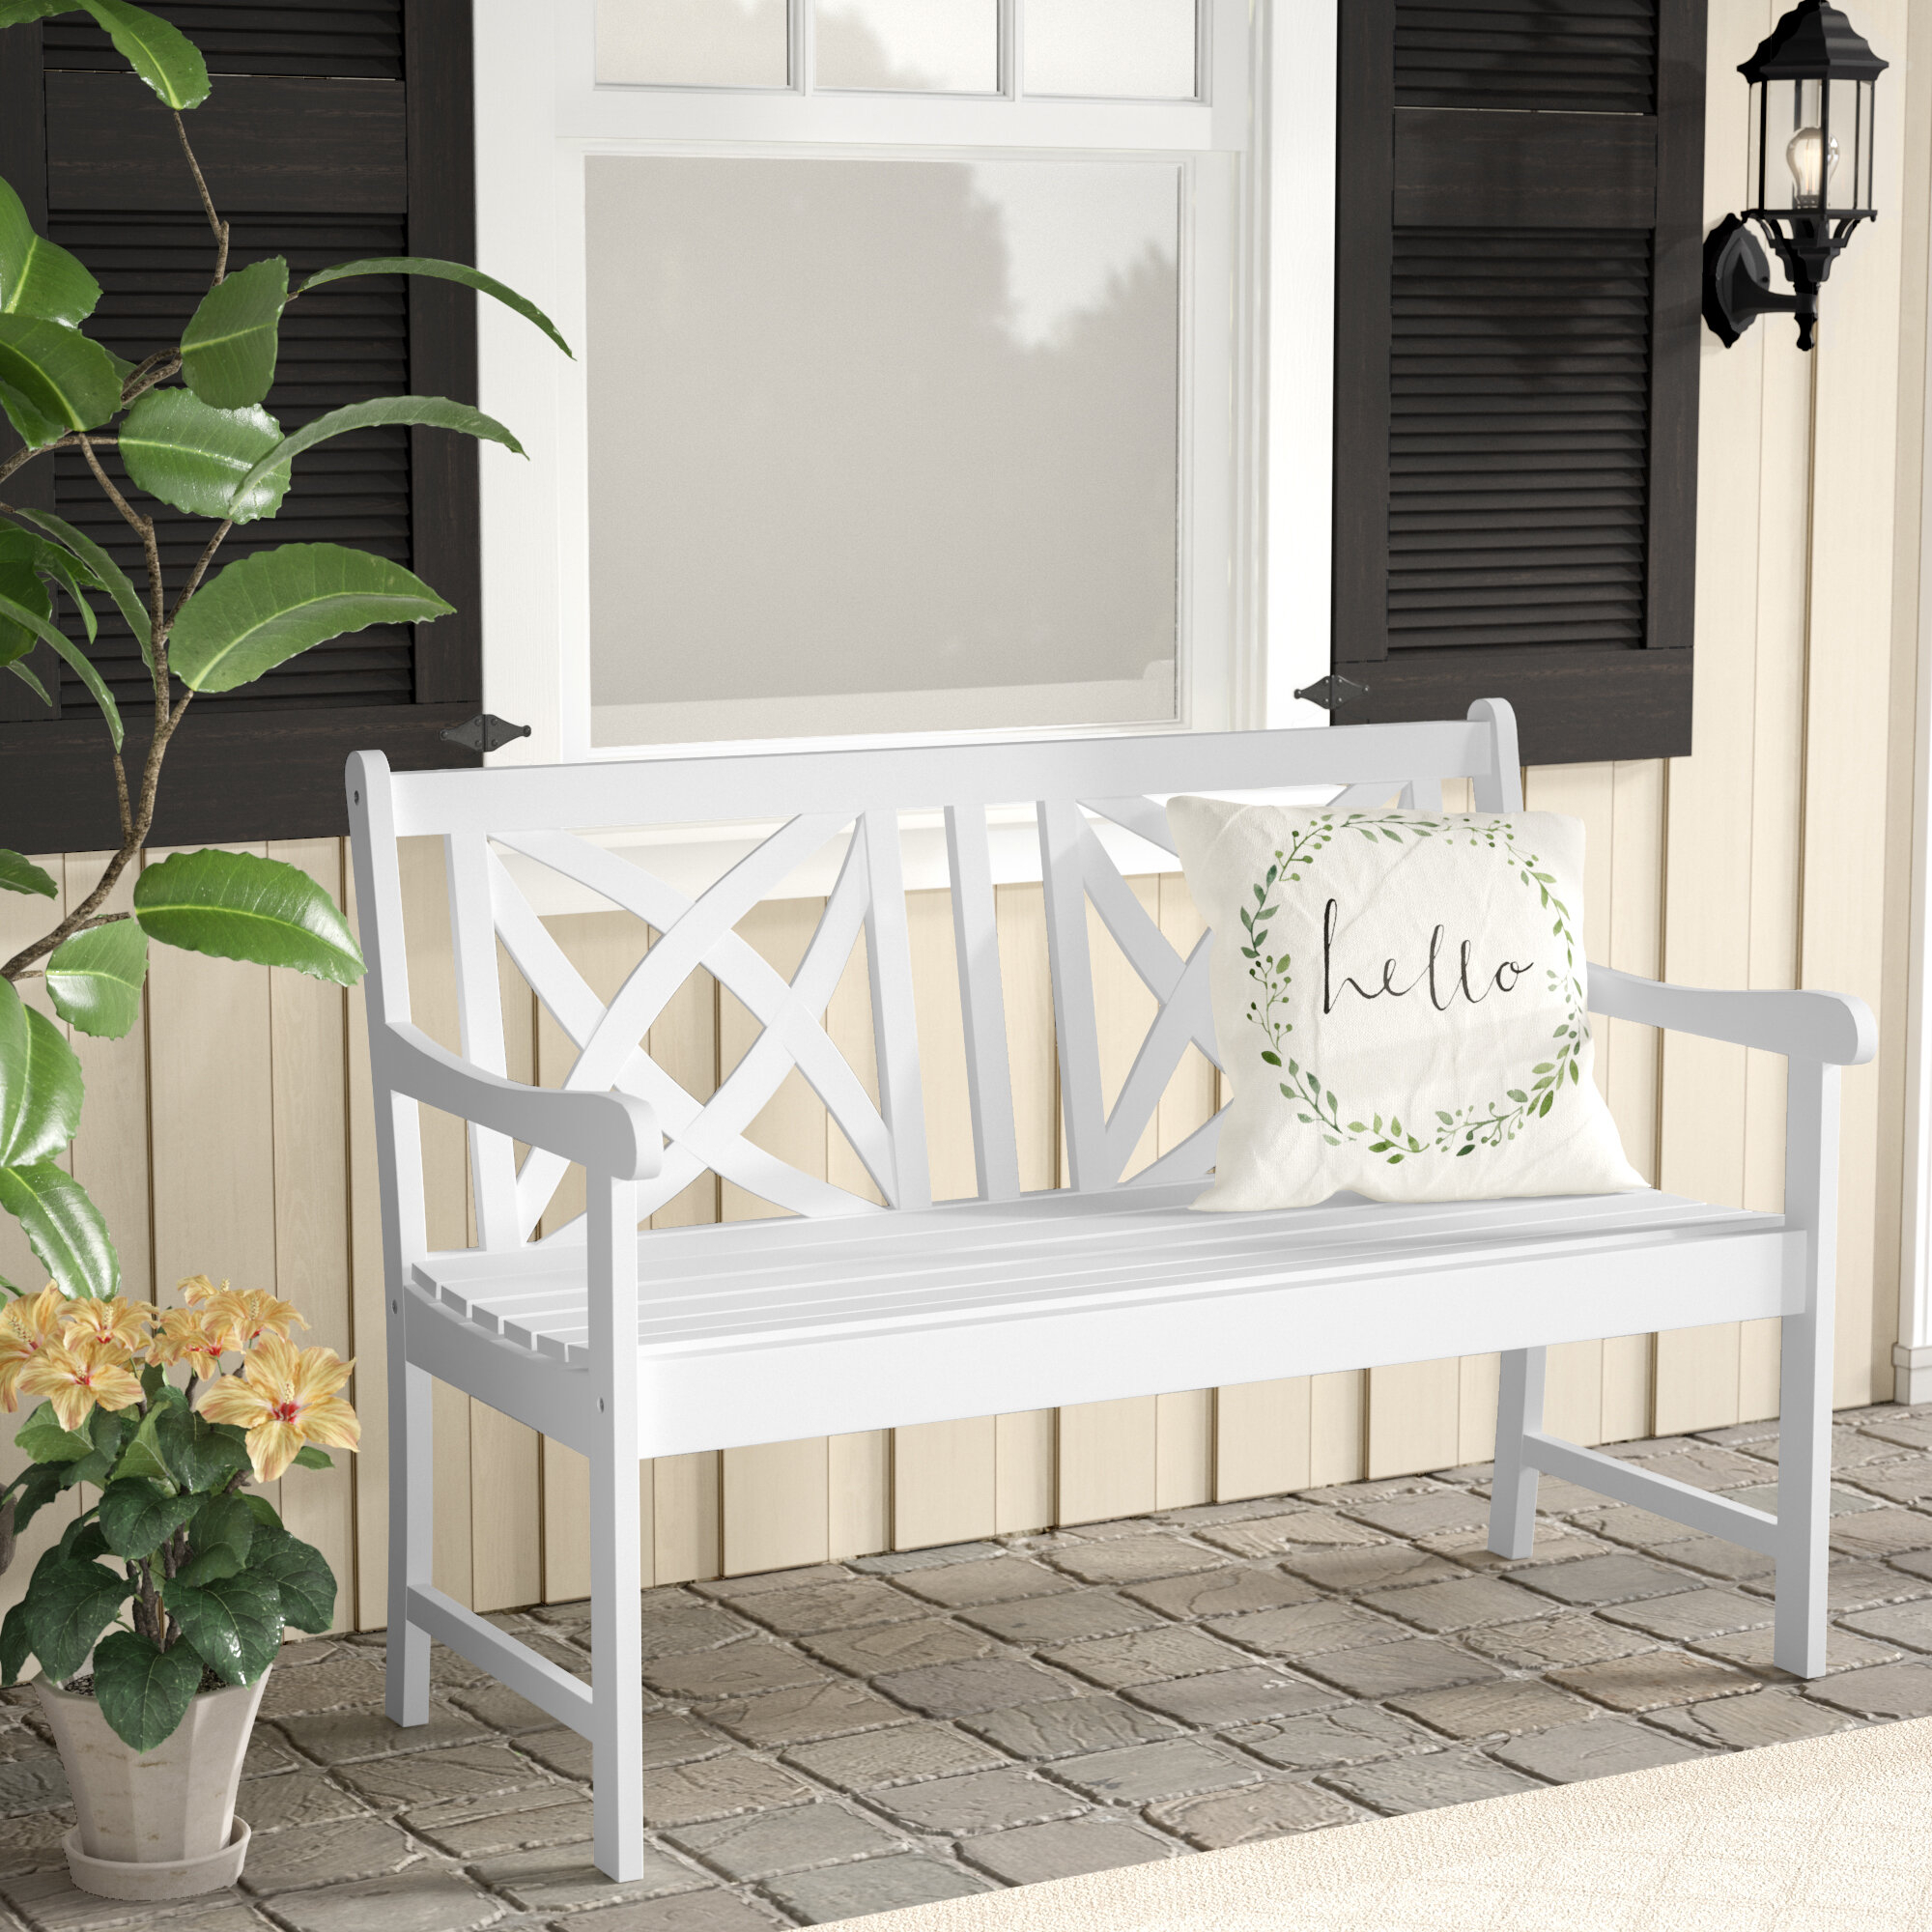 With Arms Outdoor Benches You'Ll Love In 2020 | Wayfair With Regard To Krystal Ergonomic Metal Garden Benches (View 10 of 25)